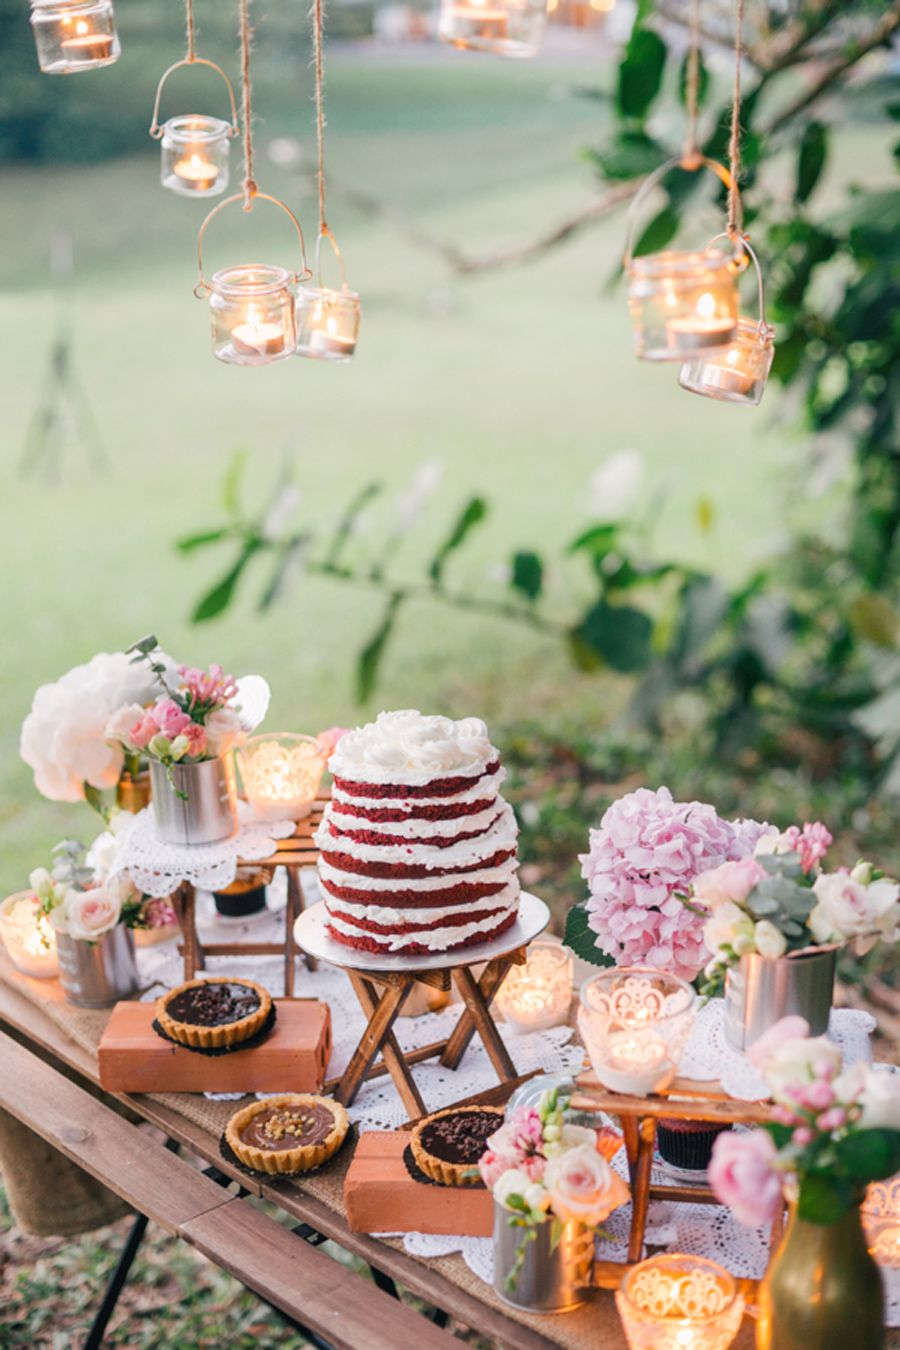 Dreamy And Rustic Wedding Picnic Inspiration Wedding Dessert Table Wedding Dessert Table Decor Picnic Inspiration